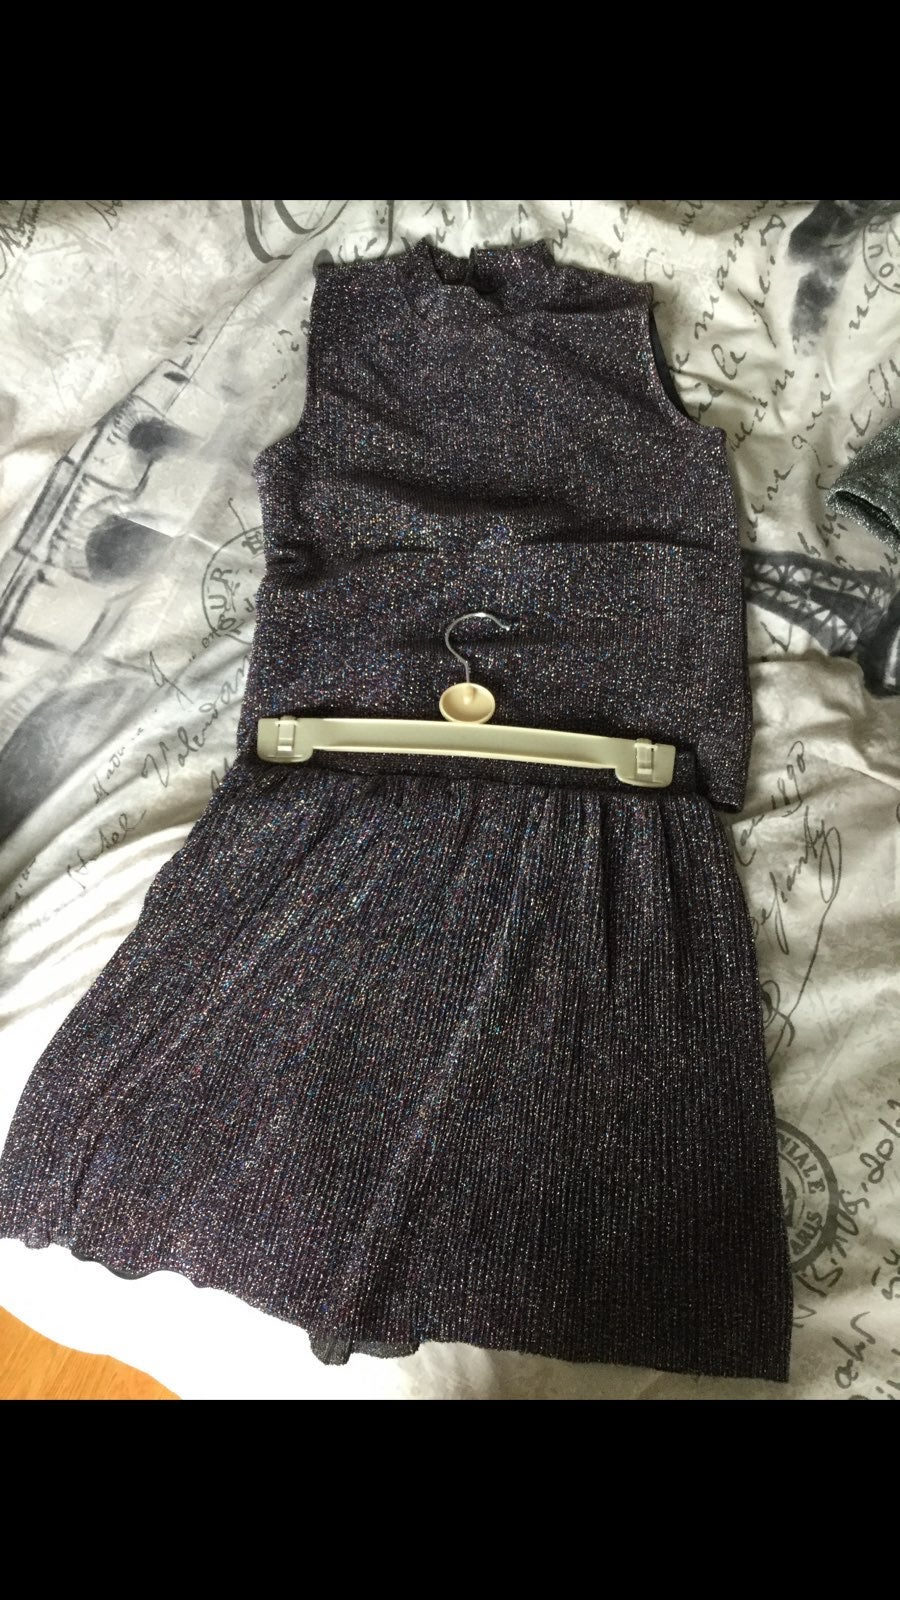 Childrens two piece